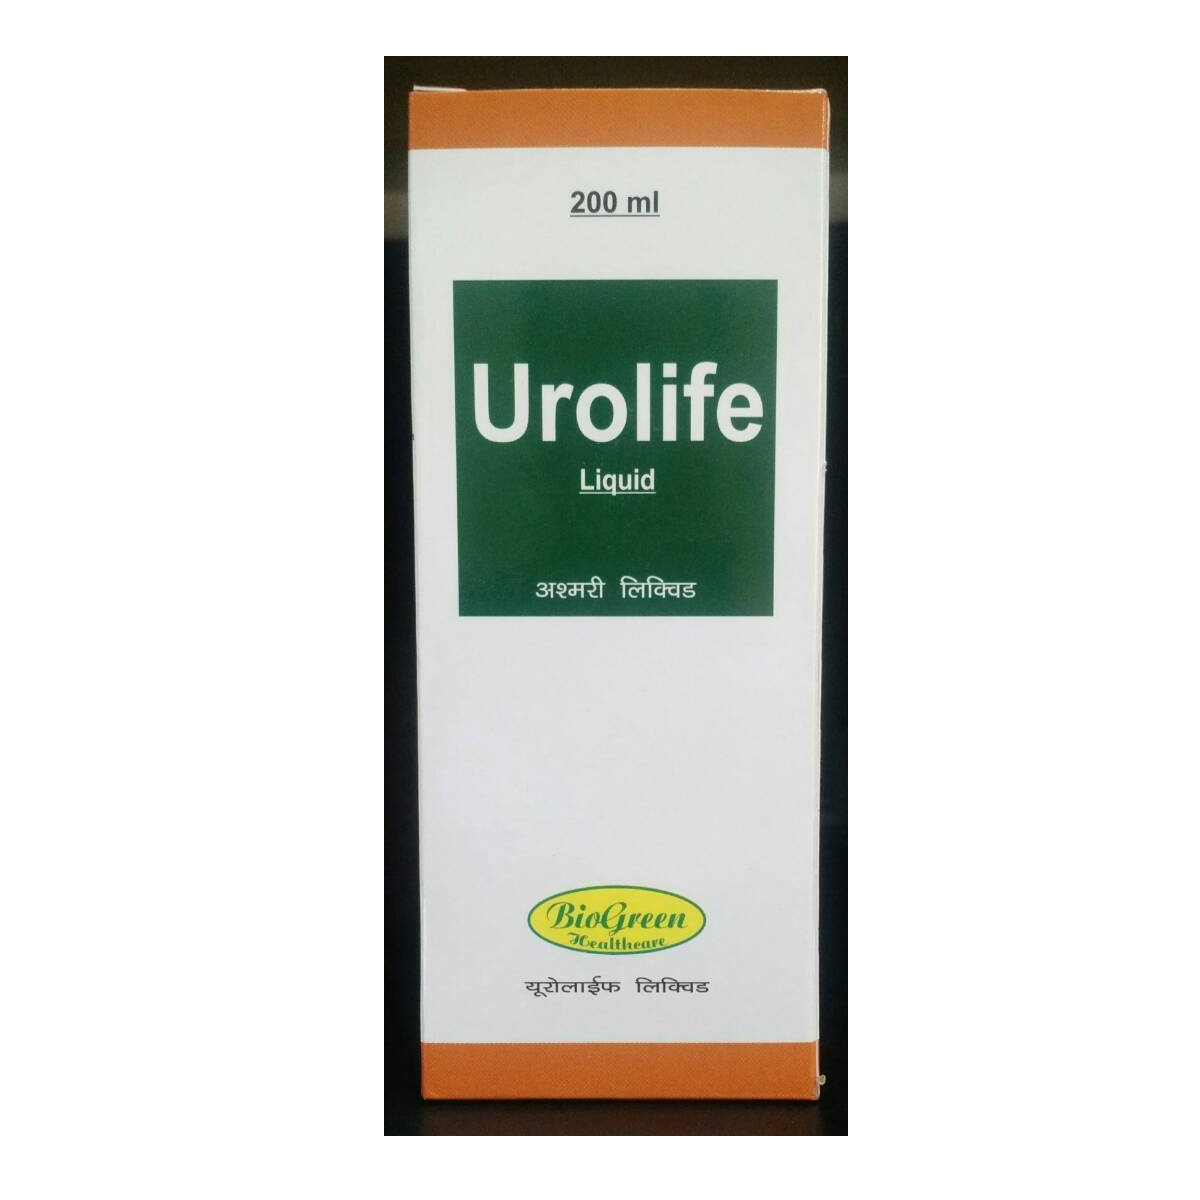 Urolife Liquid In Erode